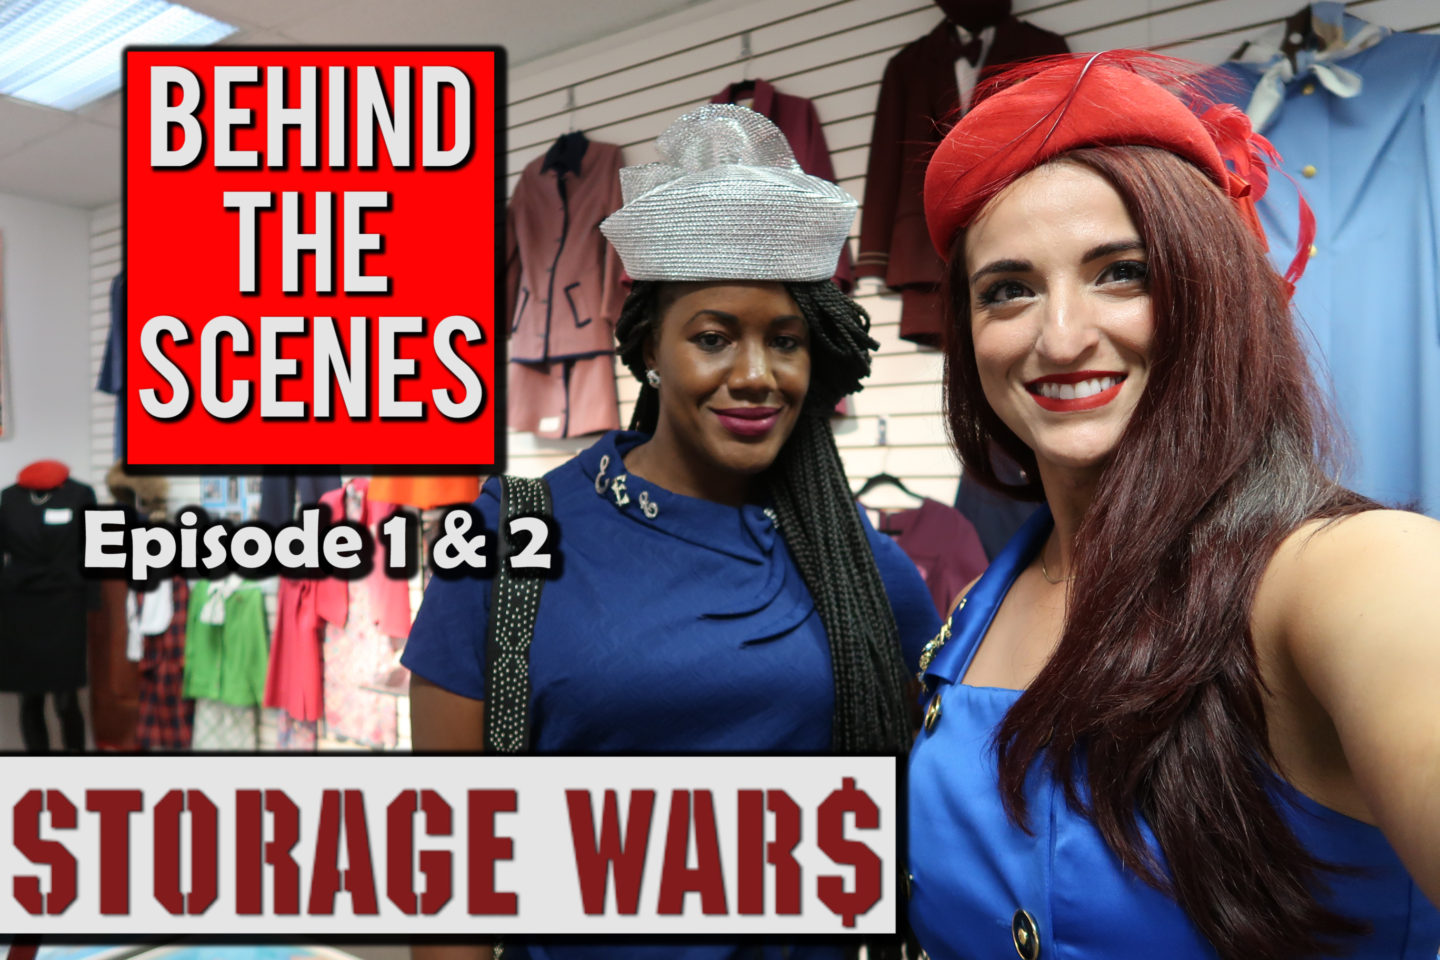 Storage Wars Season 11 Episodes 1 & 2 | Behind the Scenes